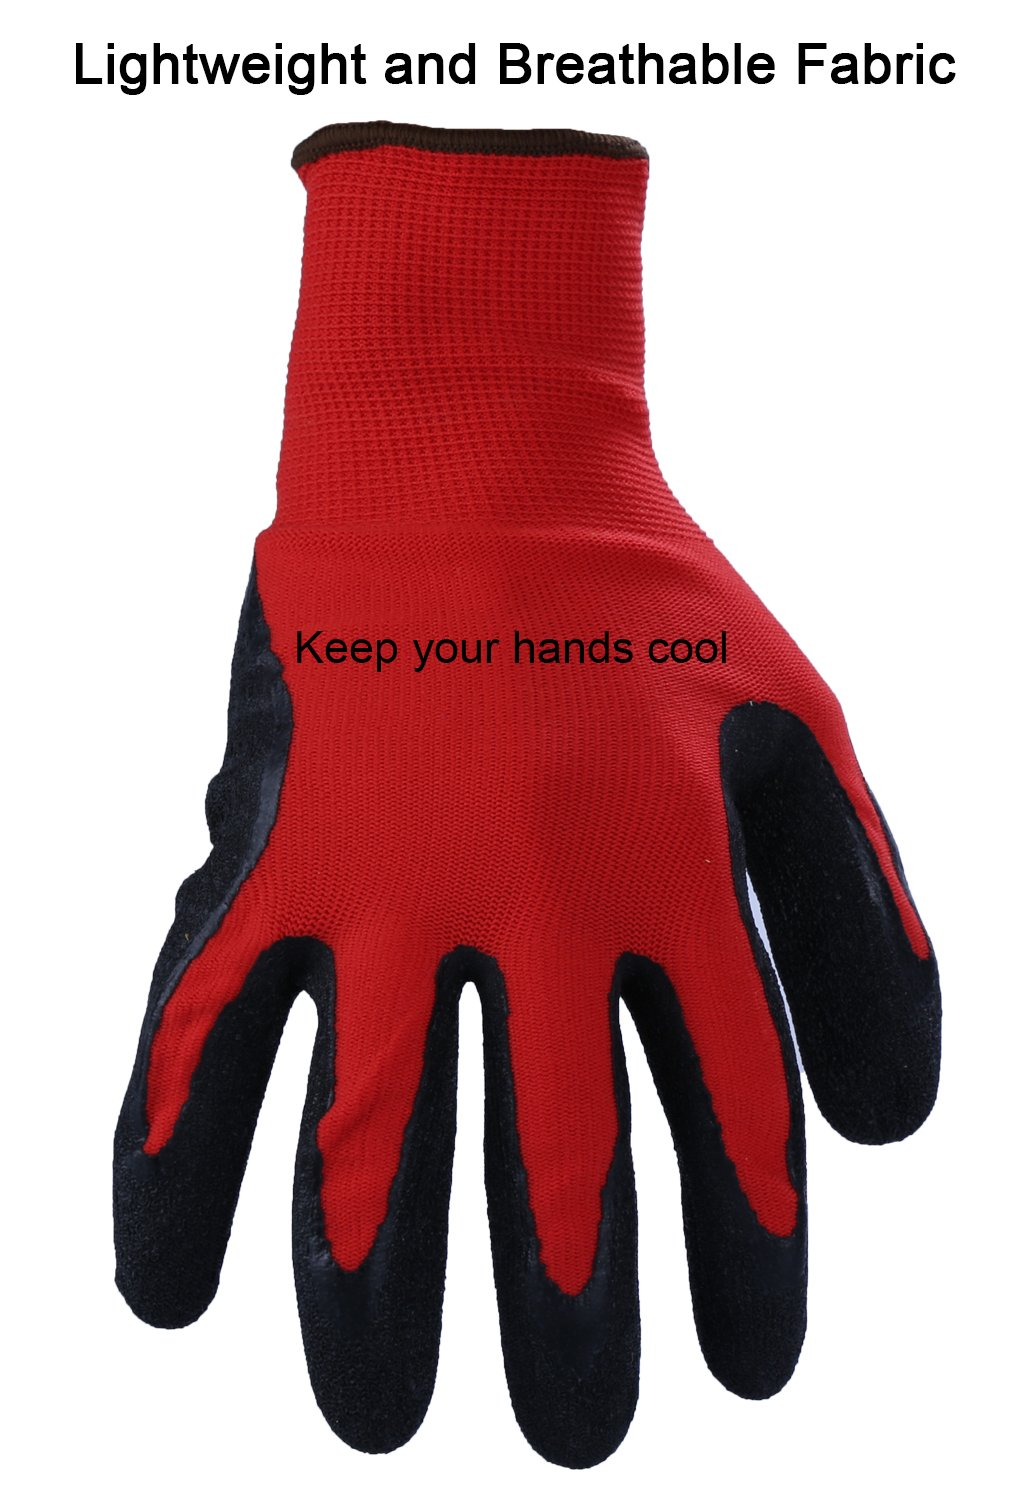 Ozero Working Gloves Rubber Work Glove With Stretchy Nylon Shell Ngk Lamp Timer 12v Dc Wire Diagram For Fishing Gardening Yard Farm Household Warehouse Repairment